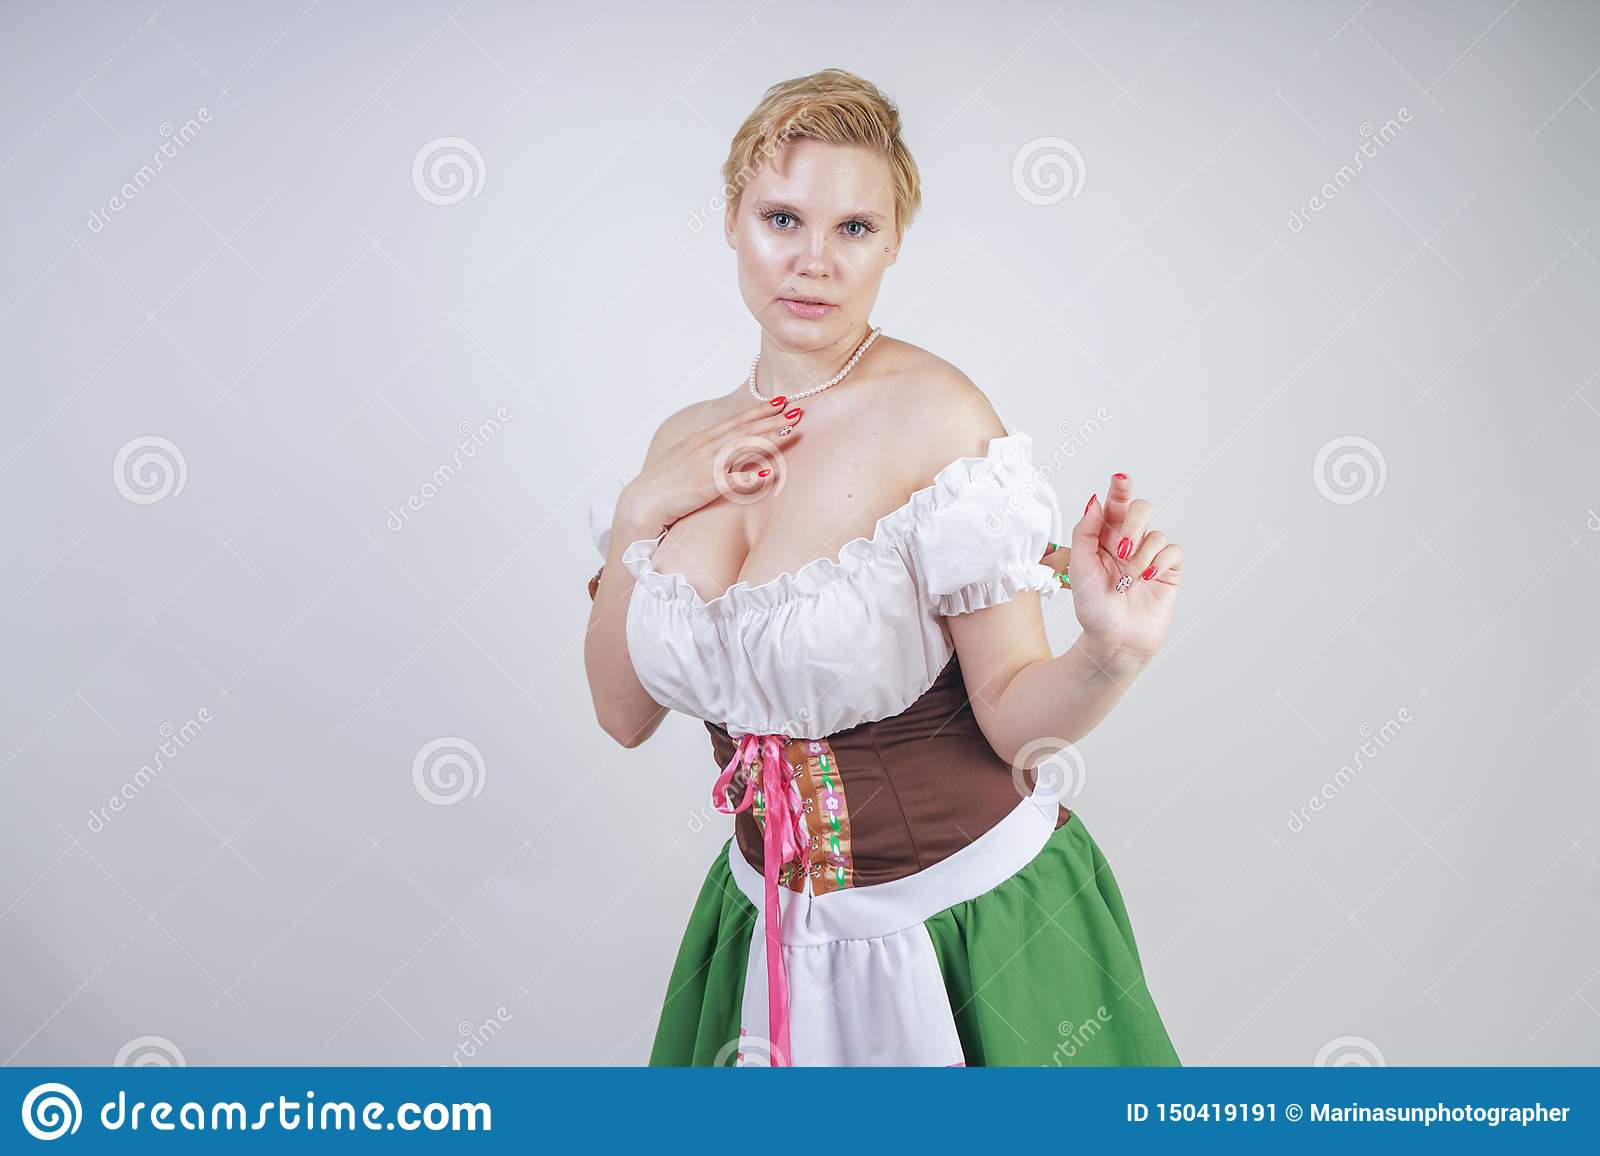 short girl with big breasts